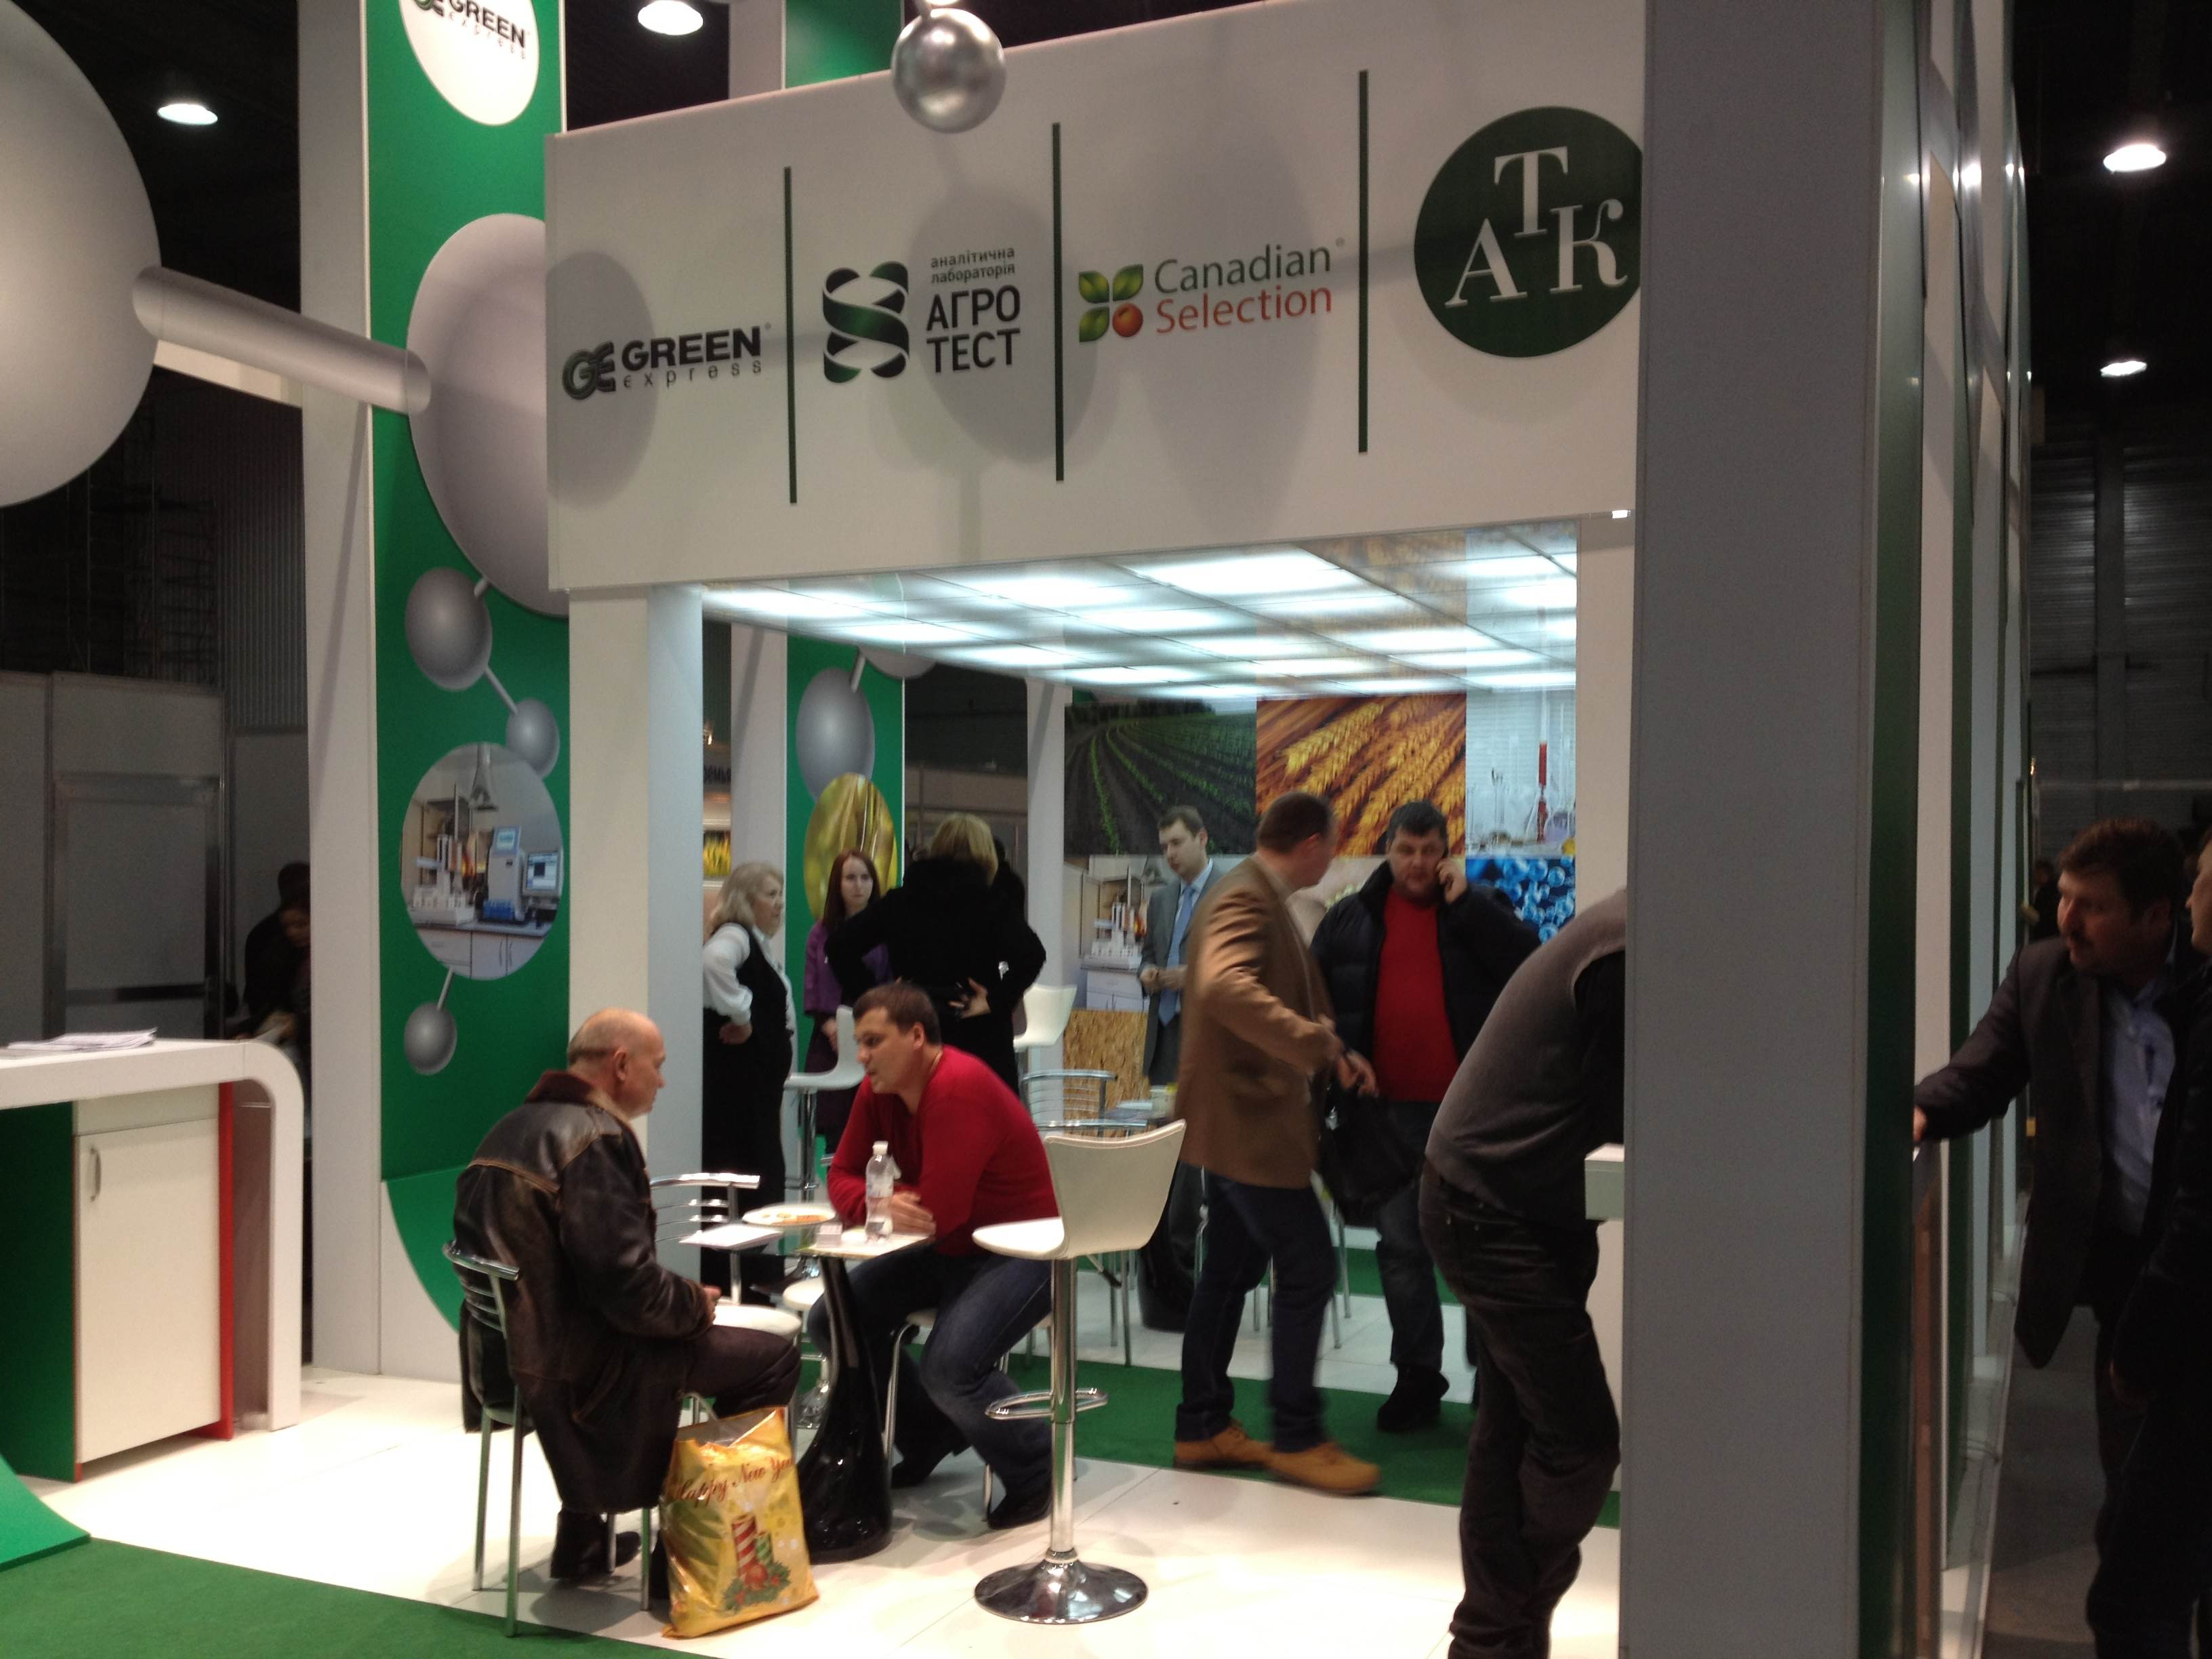 Green Express participation at the exhibition